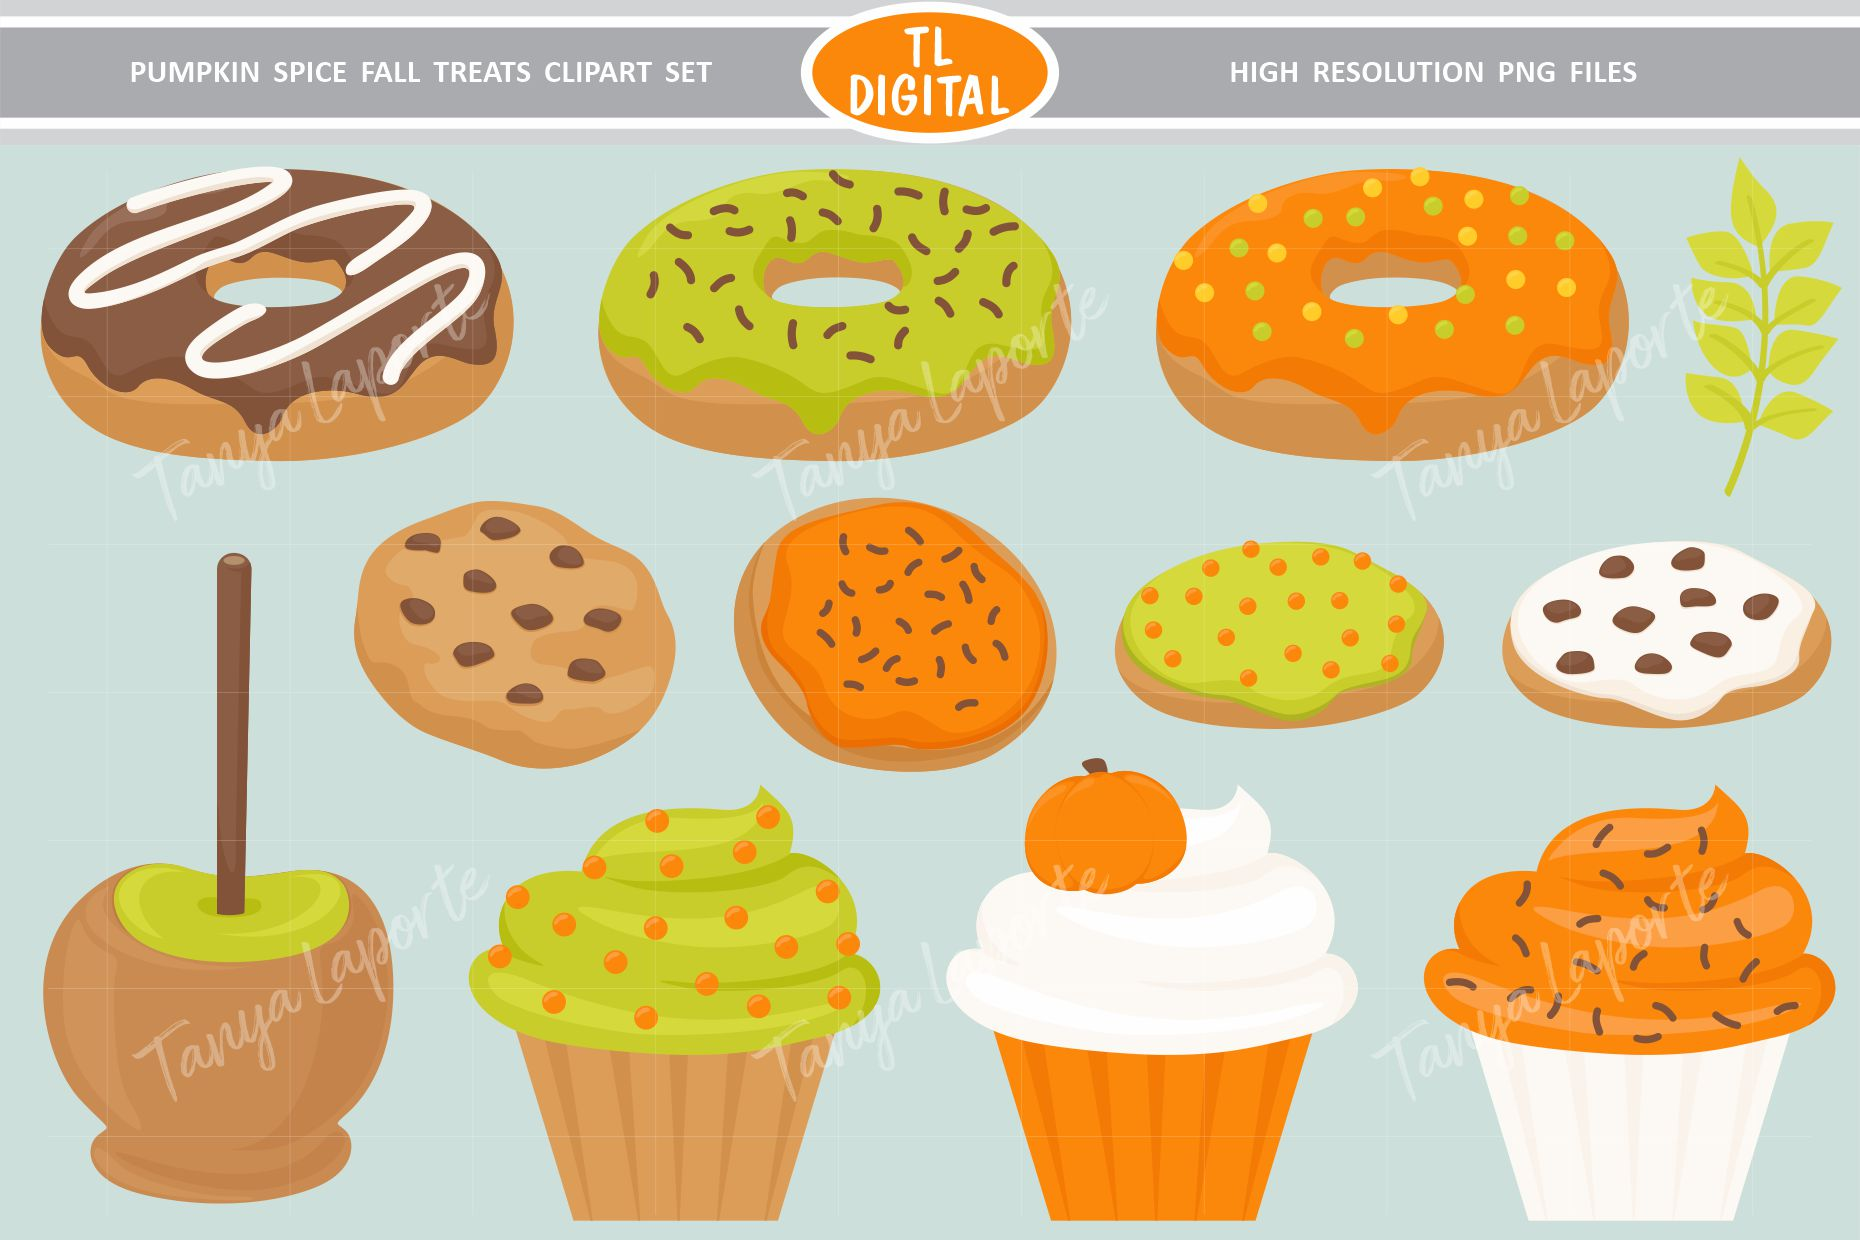 Pumpkin Spice Fall Treats Clipart - 32 PNG Graphics example image 2